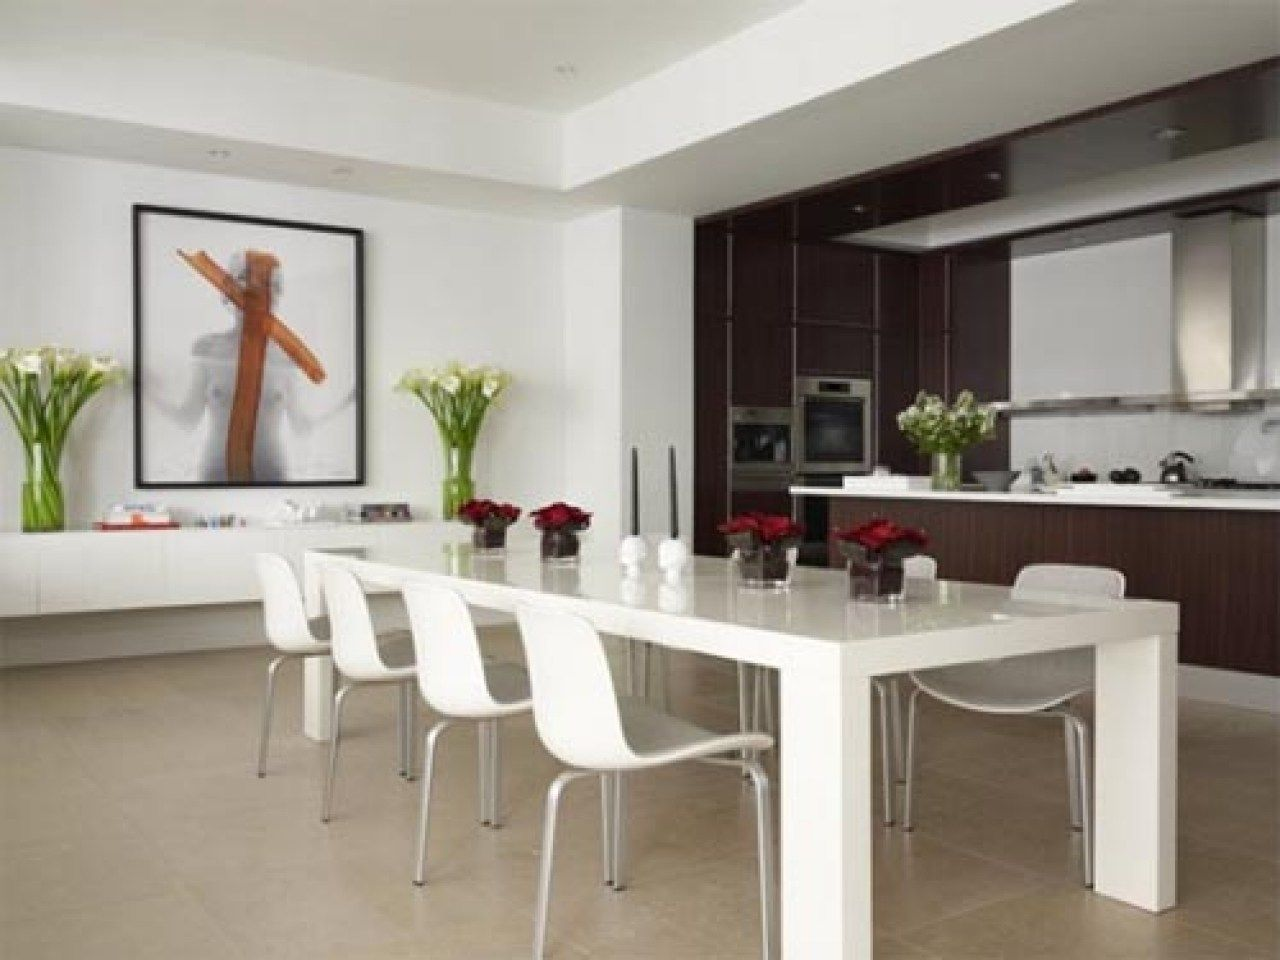 Dining Room Kitchen Beautiful Interior Decorating Ideas West Chin Home Interior Pict Contemporary Dining Room Design Minimalist Dining Room Dining Room Remodel Dining room stores best free home